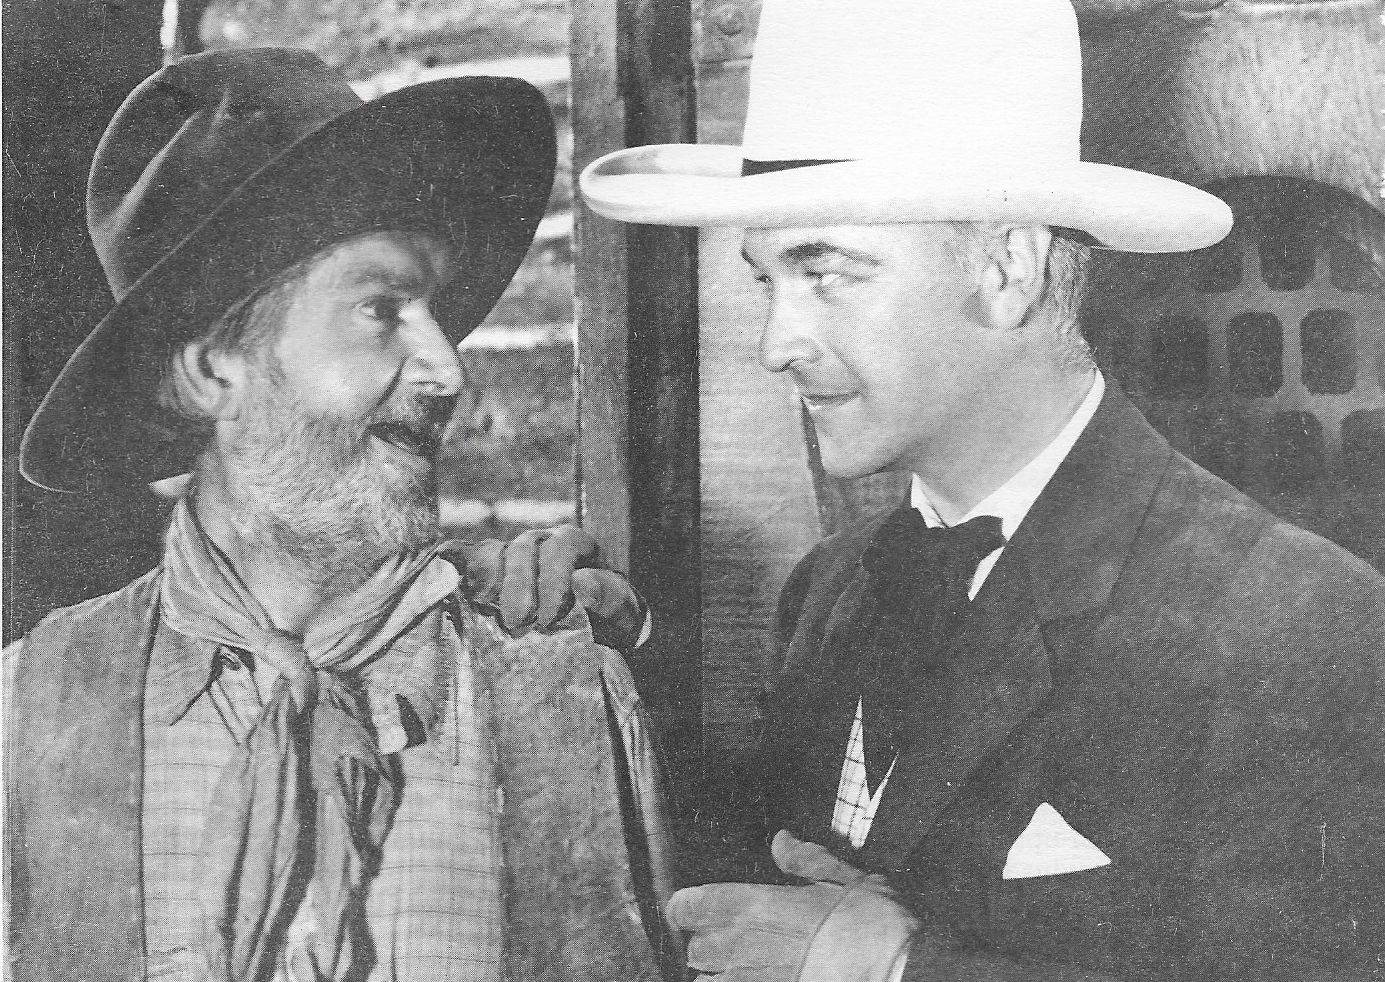 William Boyd and George 'Gabby' Hayes in Bar 20 Rides Again (1935)